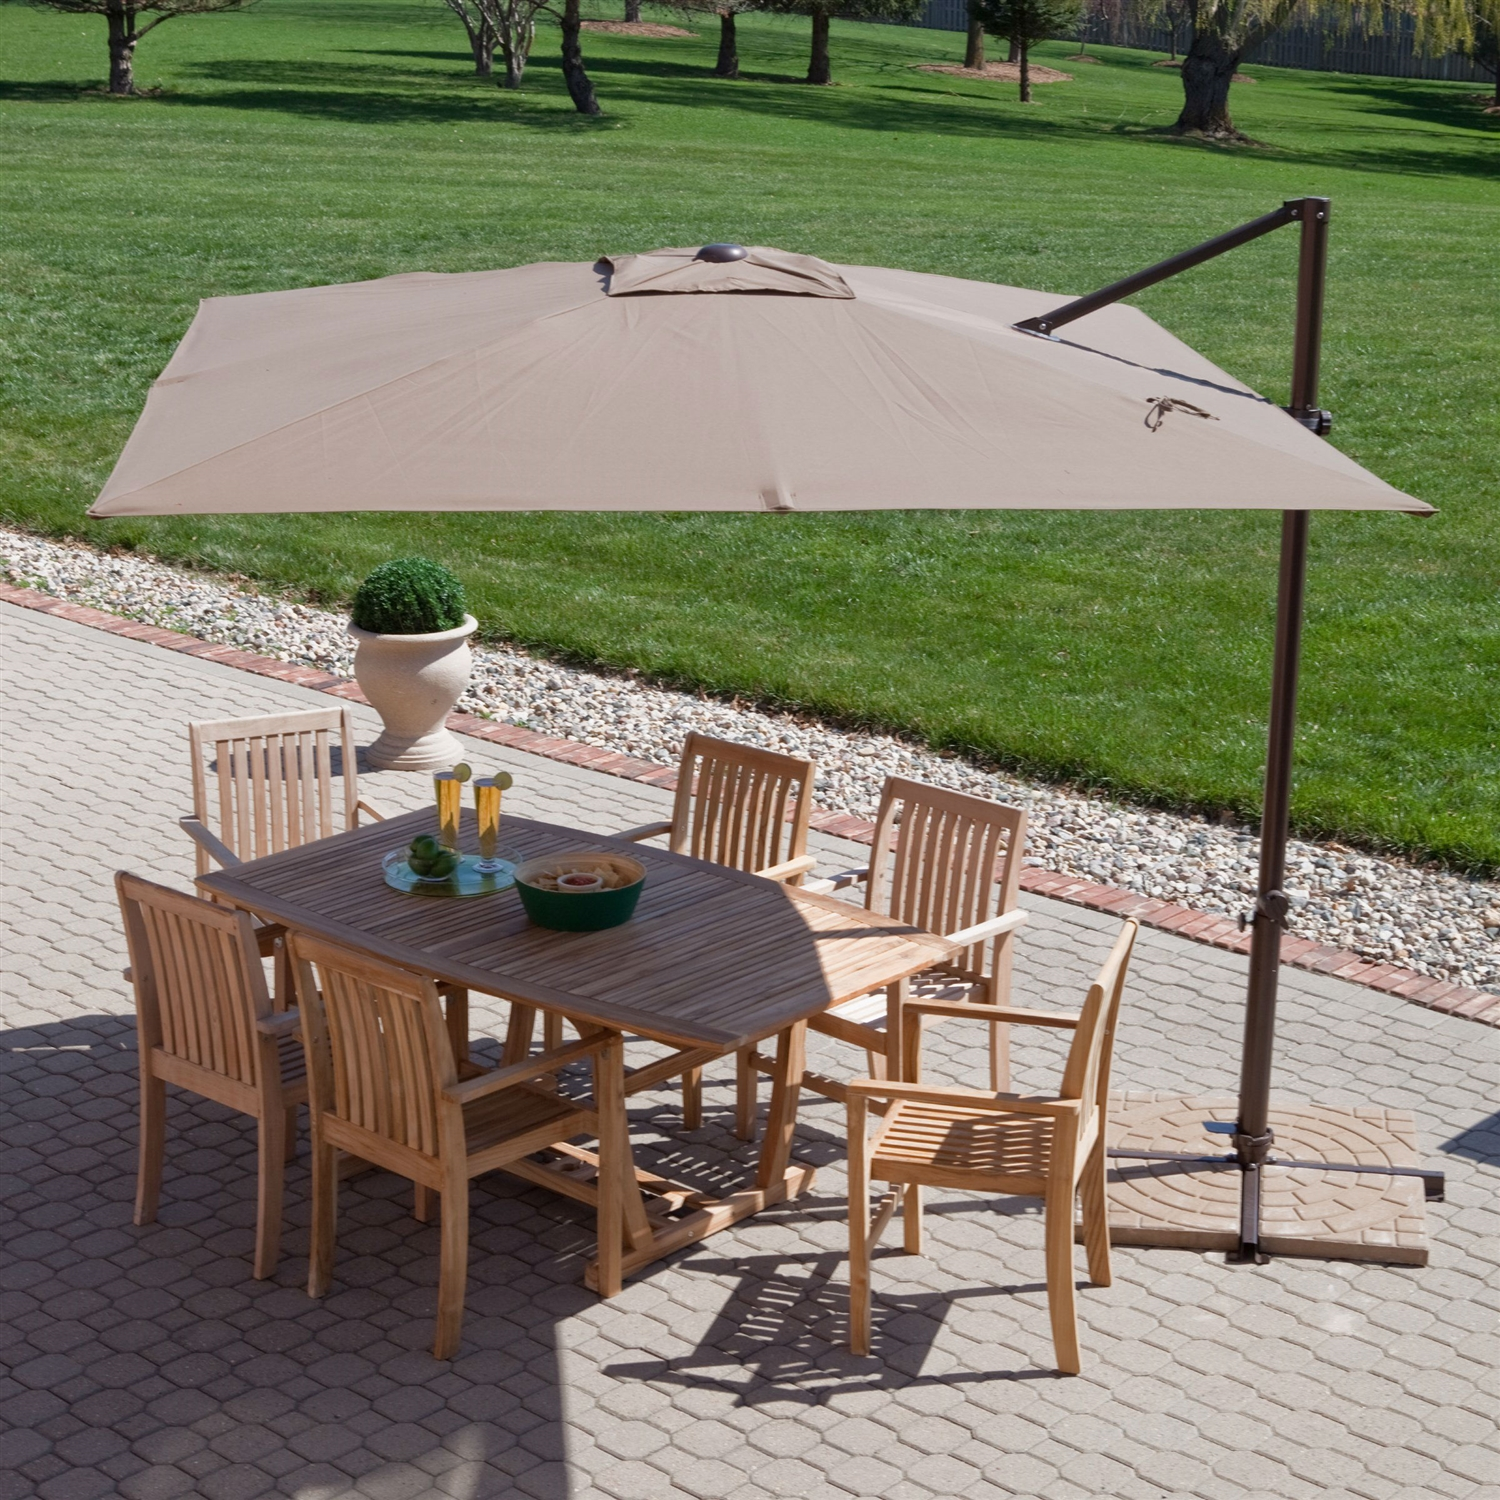 A guide to buying offset patio umbrella